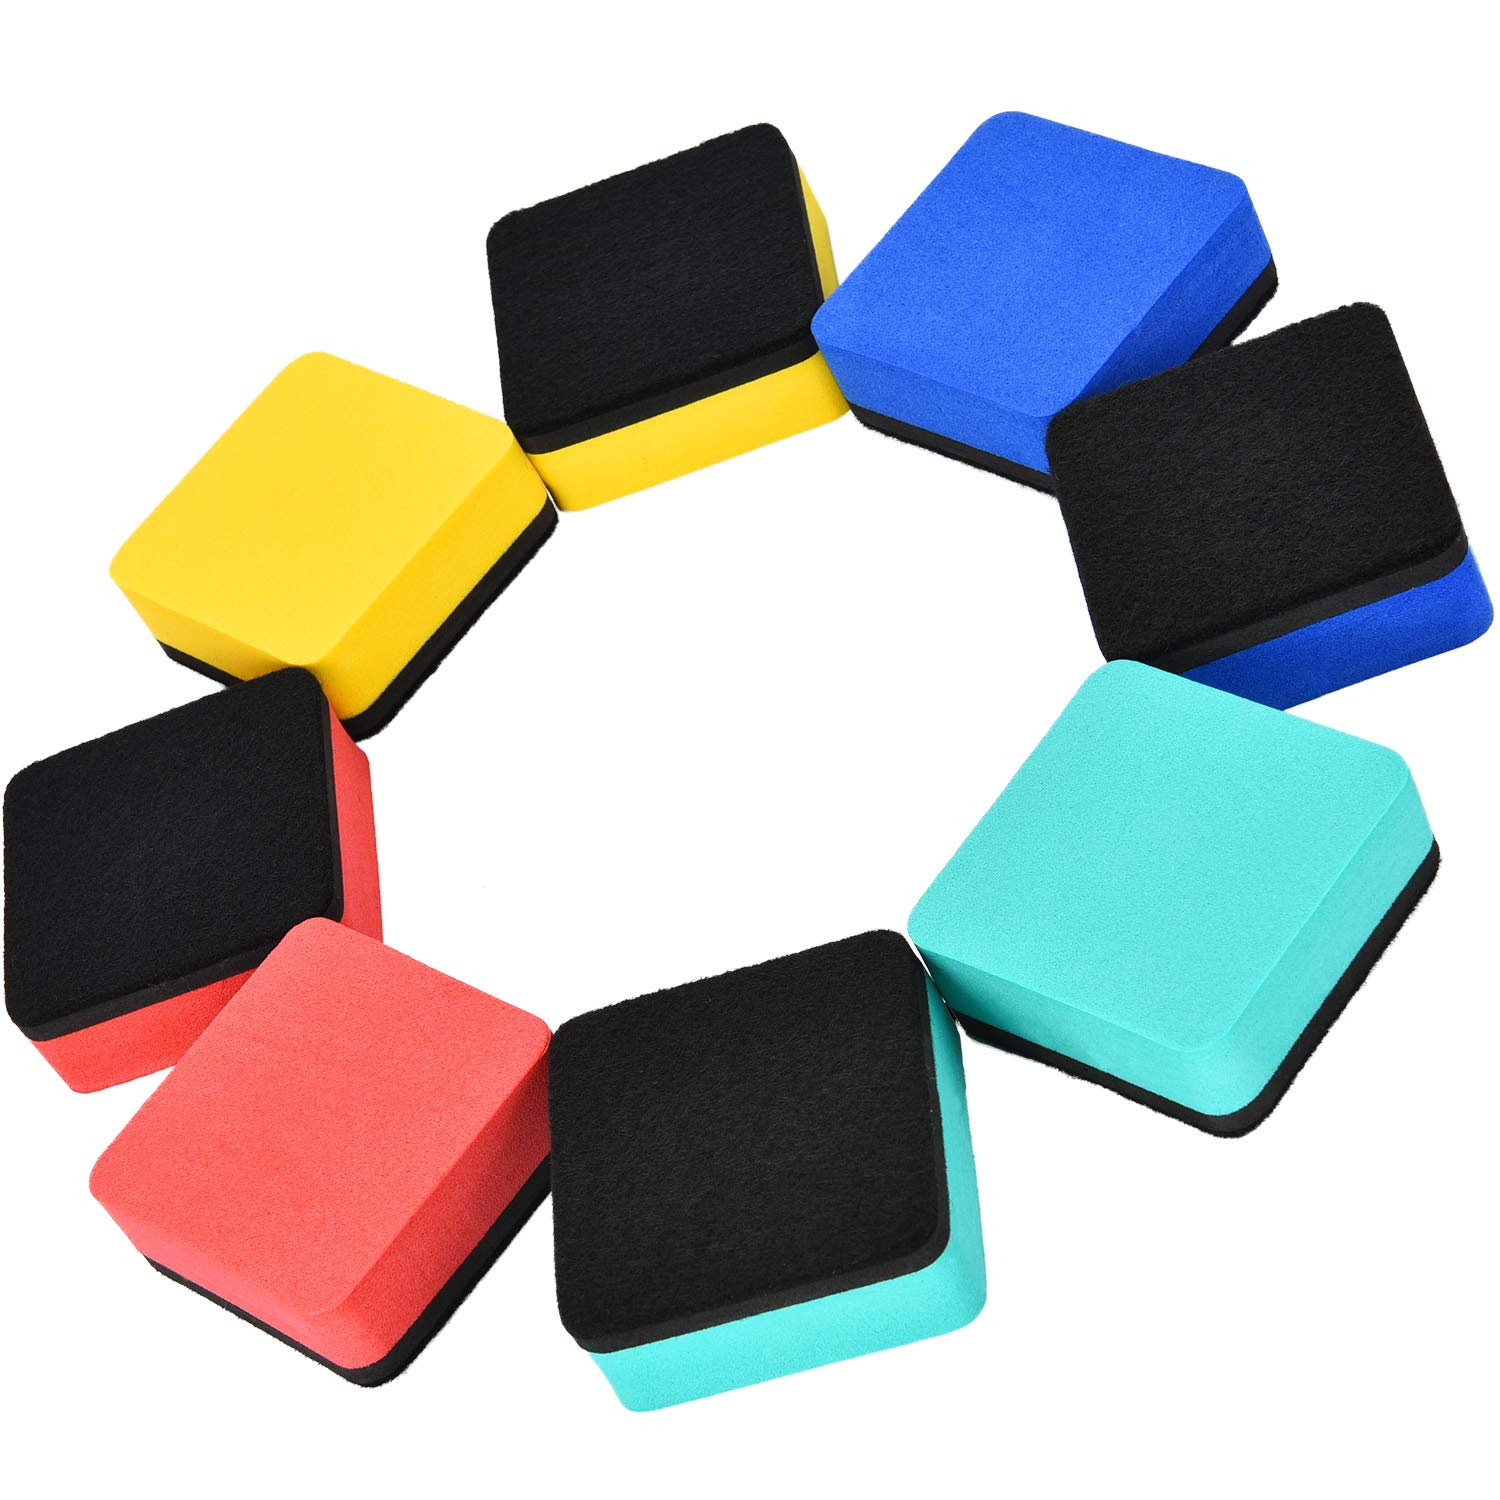 Blulu 48 Pieces Mini Magnetic Whiteboard Erasers Dry Erase Erasers Chalkboard Erasers for Home Classroom Office Use (Mixed Colors, 1.97 x 1.97 Inches) by Blulu (Image #4)